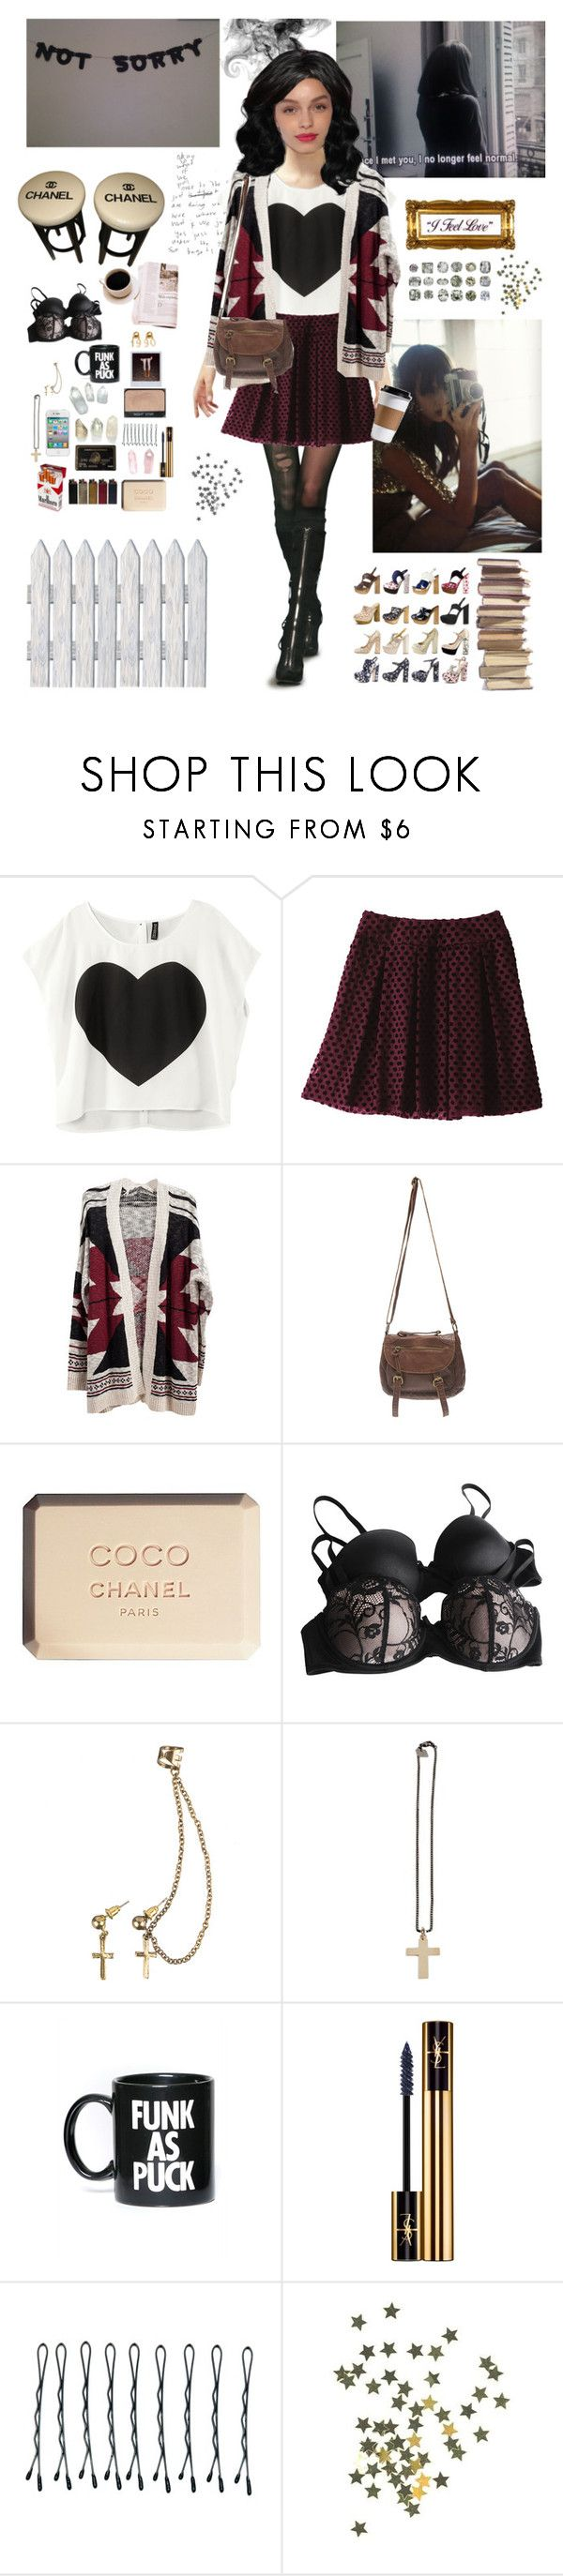 """Aria M."" by mademoisellegabriellecoco ❤ liked on Polyvore featuring Uniqlo, Wet Seal, Chanel, Forever 21, Club Manhattan, Maria Francesca Pepe, NARS Cosmetics, Dreamgirl, Glamour Kills and Yves Saint Laurent"